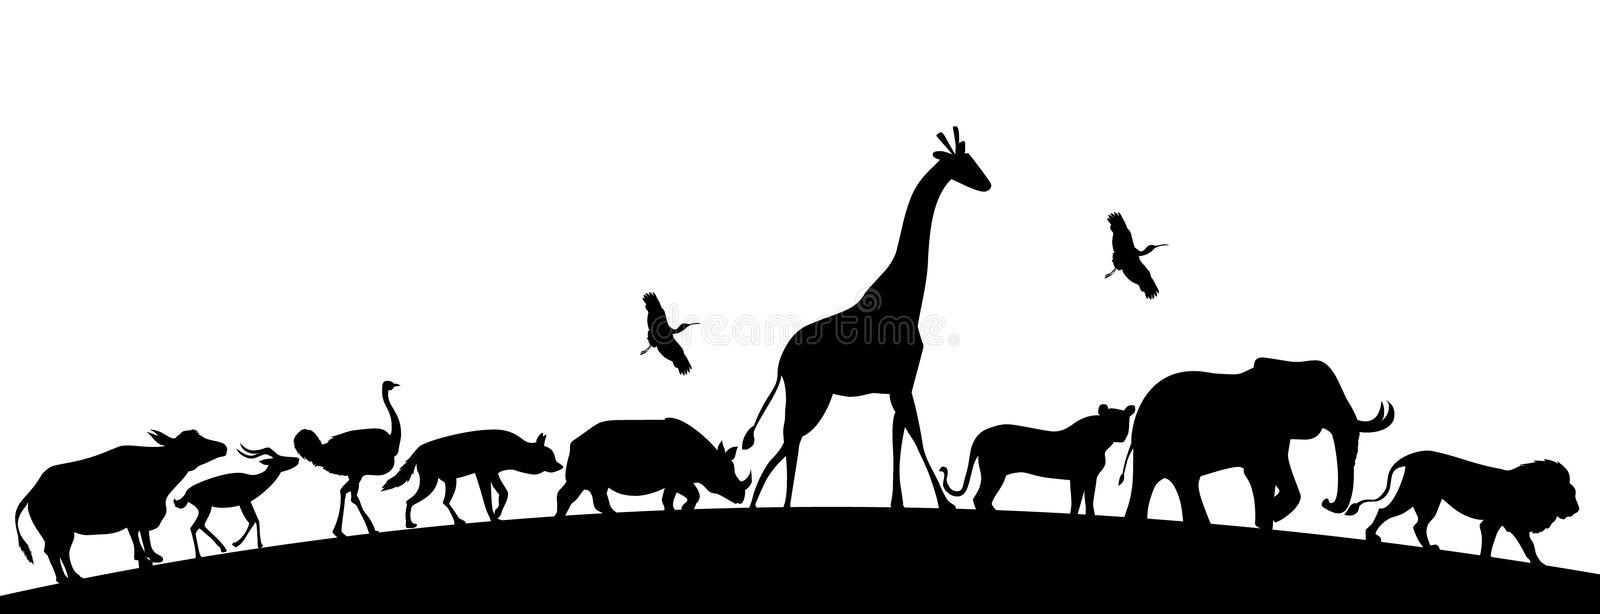 African Animals Stock Illustrations 24 486 African Animals Stock Illustrations Vectors Clipart Dreamstime